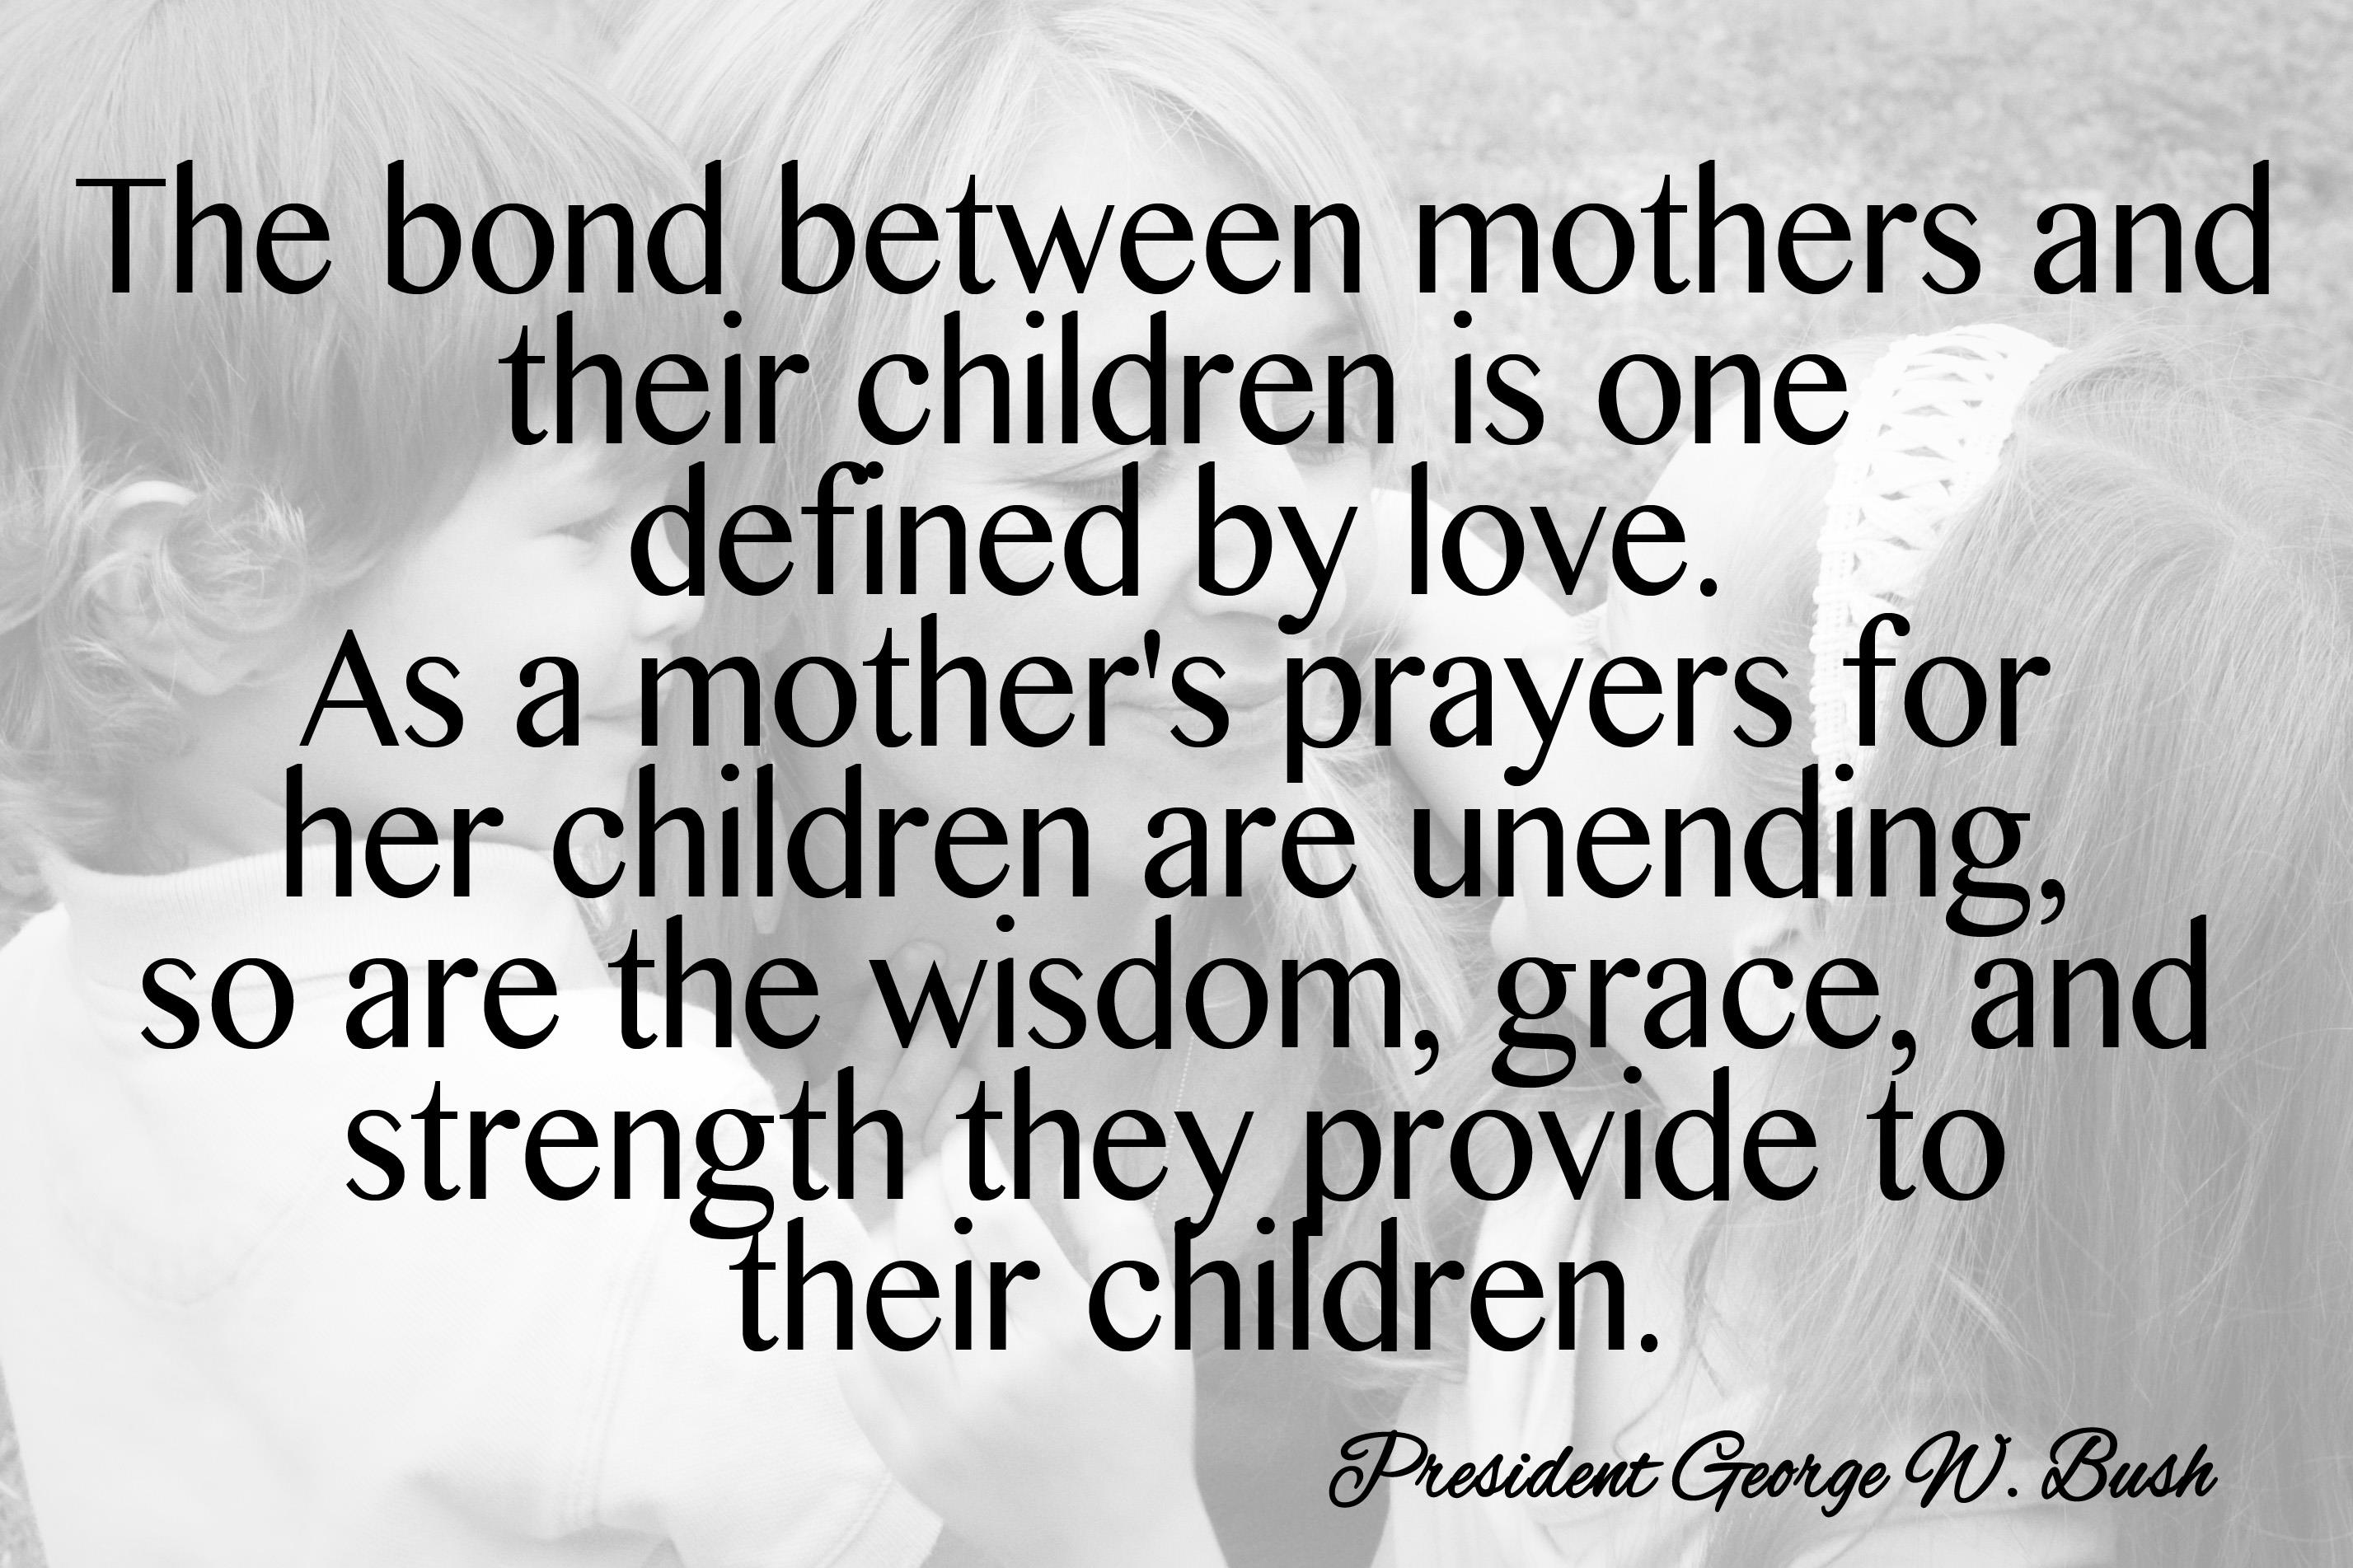 Famous Quotes About Mothers Mother's Day  Famous Quotes